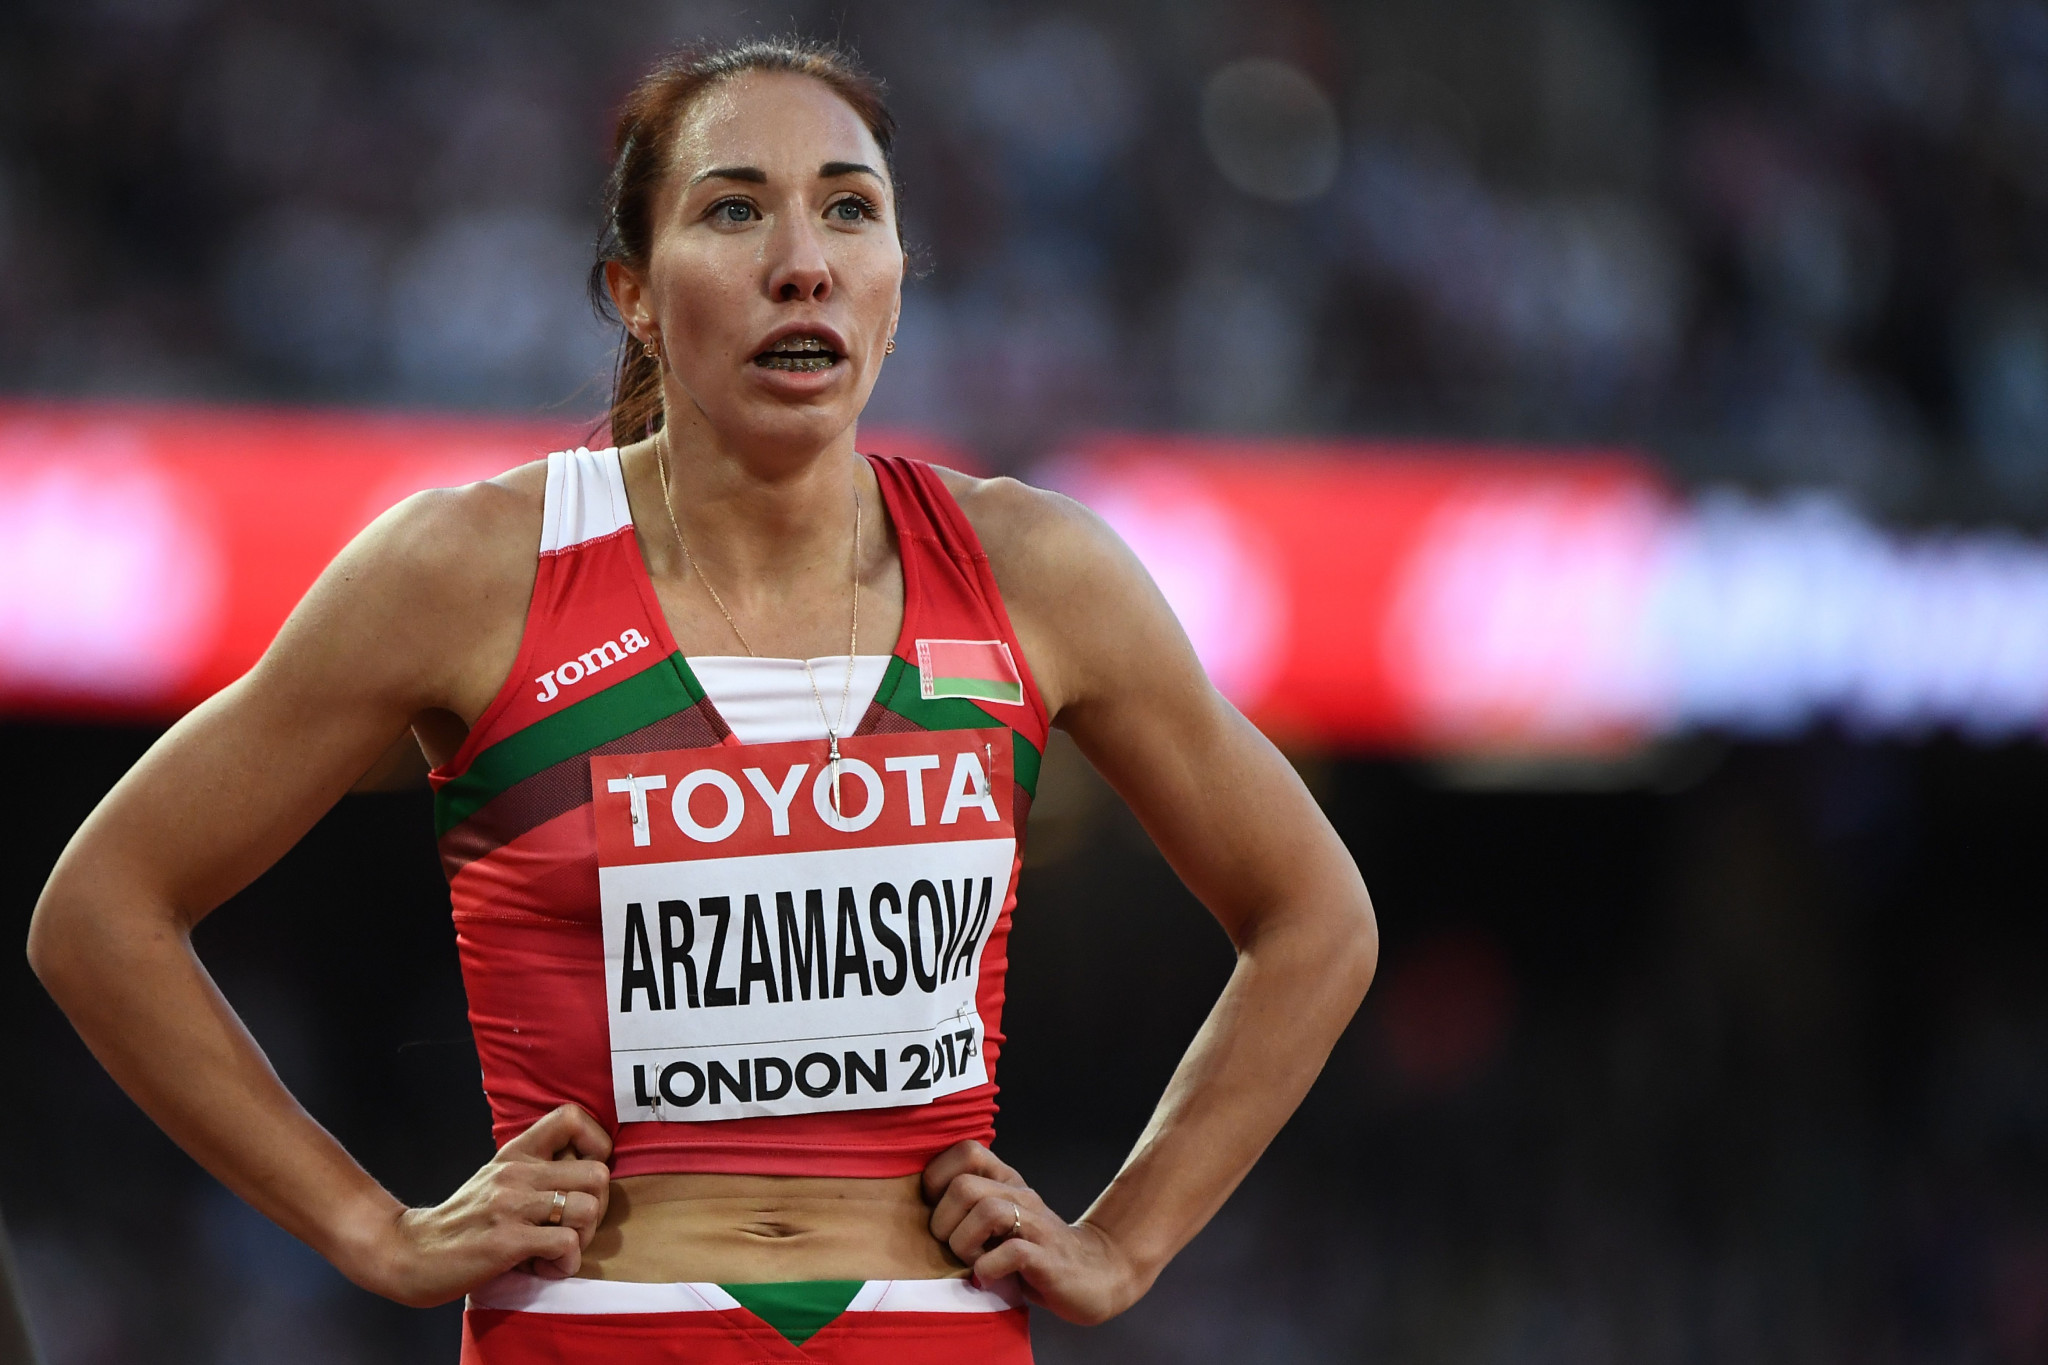 Former world 800m champion Arzamasova provisionally suspended by AIU